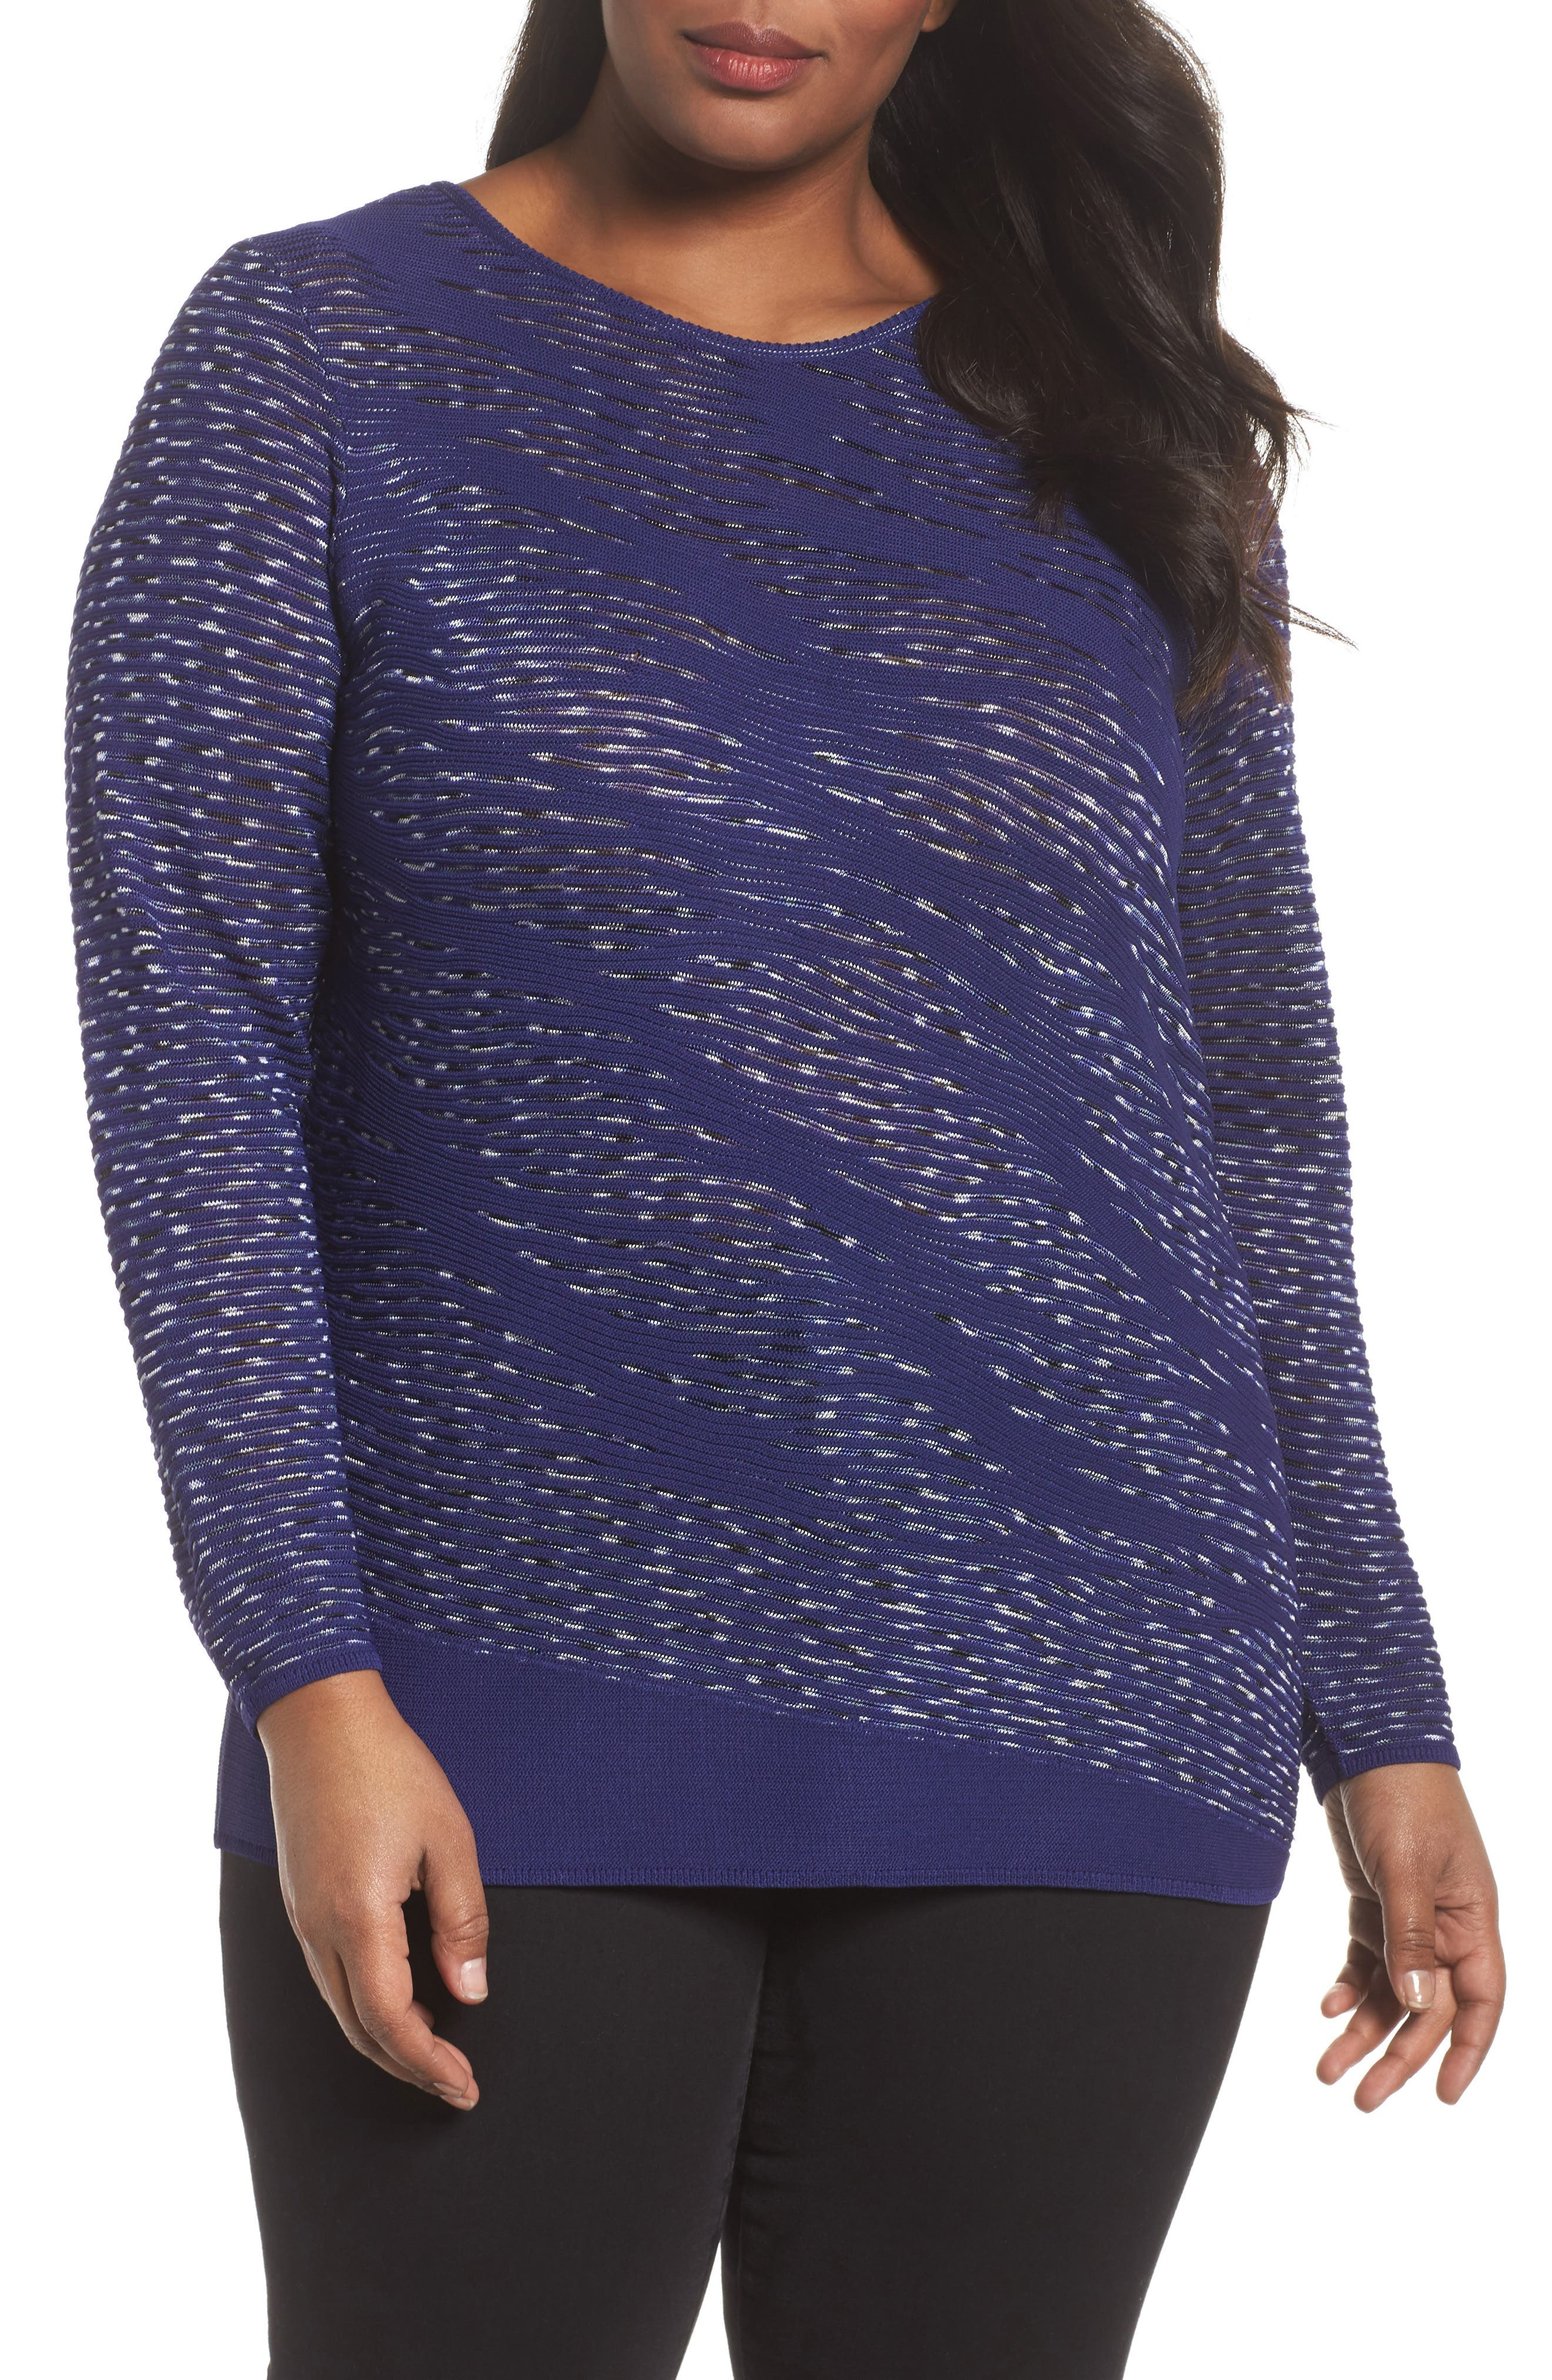 This Is Living Knit Top,                         Main,                         color, ELECTRIC BLUE